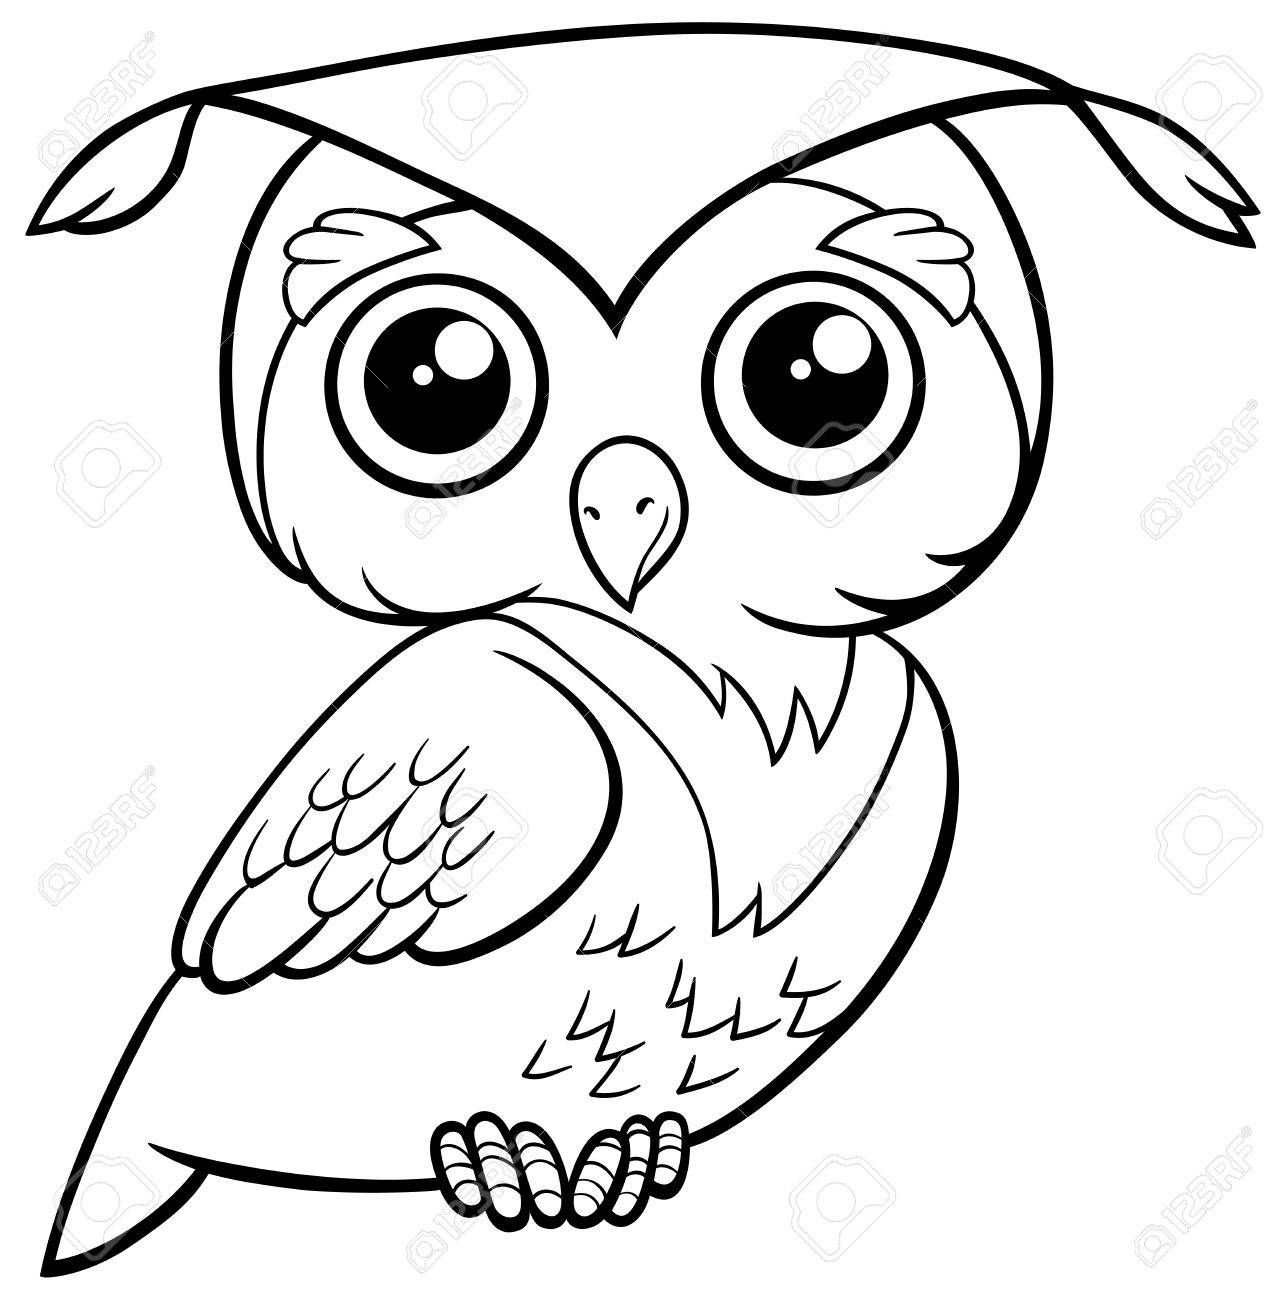 Black and white cartoon illustration of cute owl bird animal